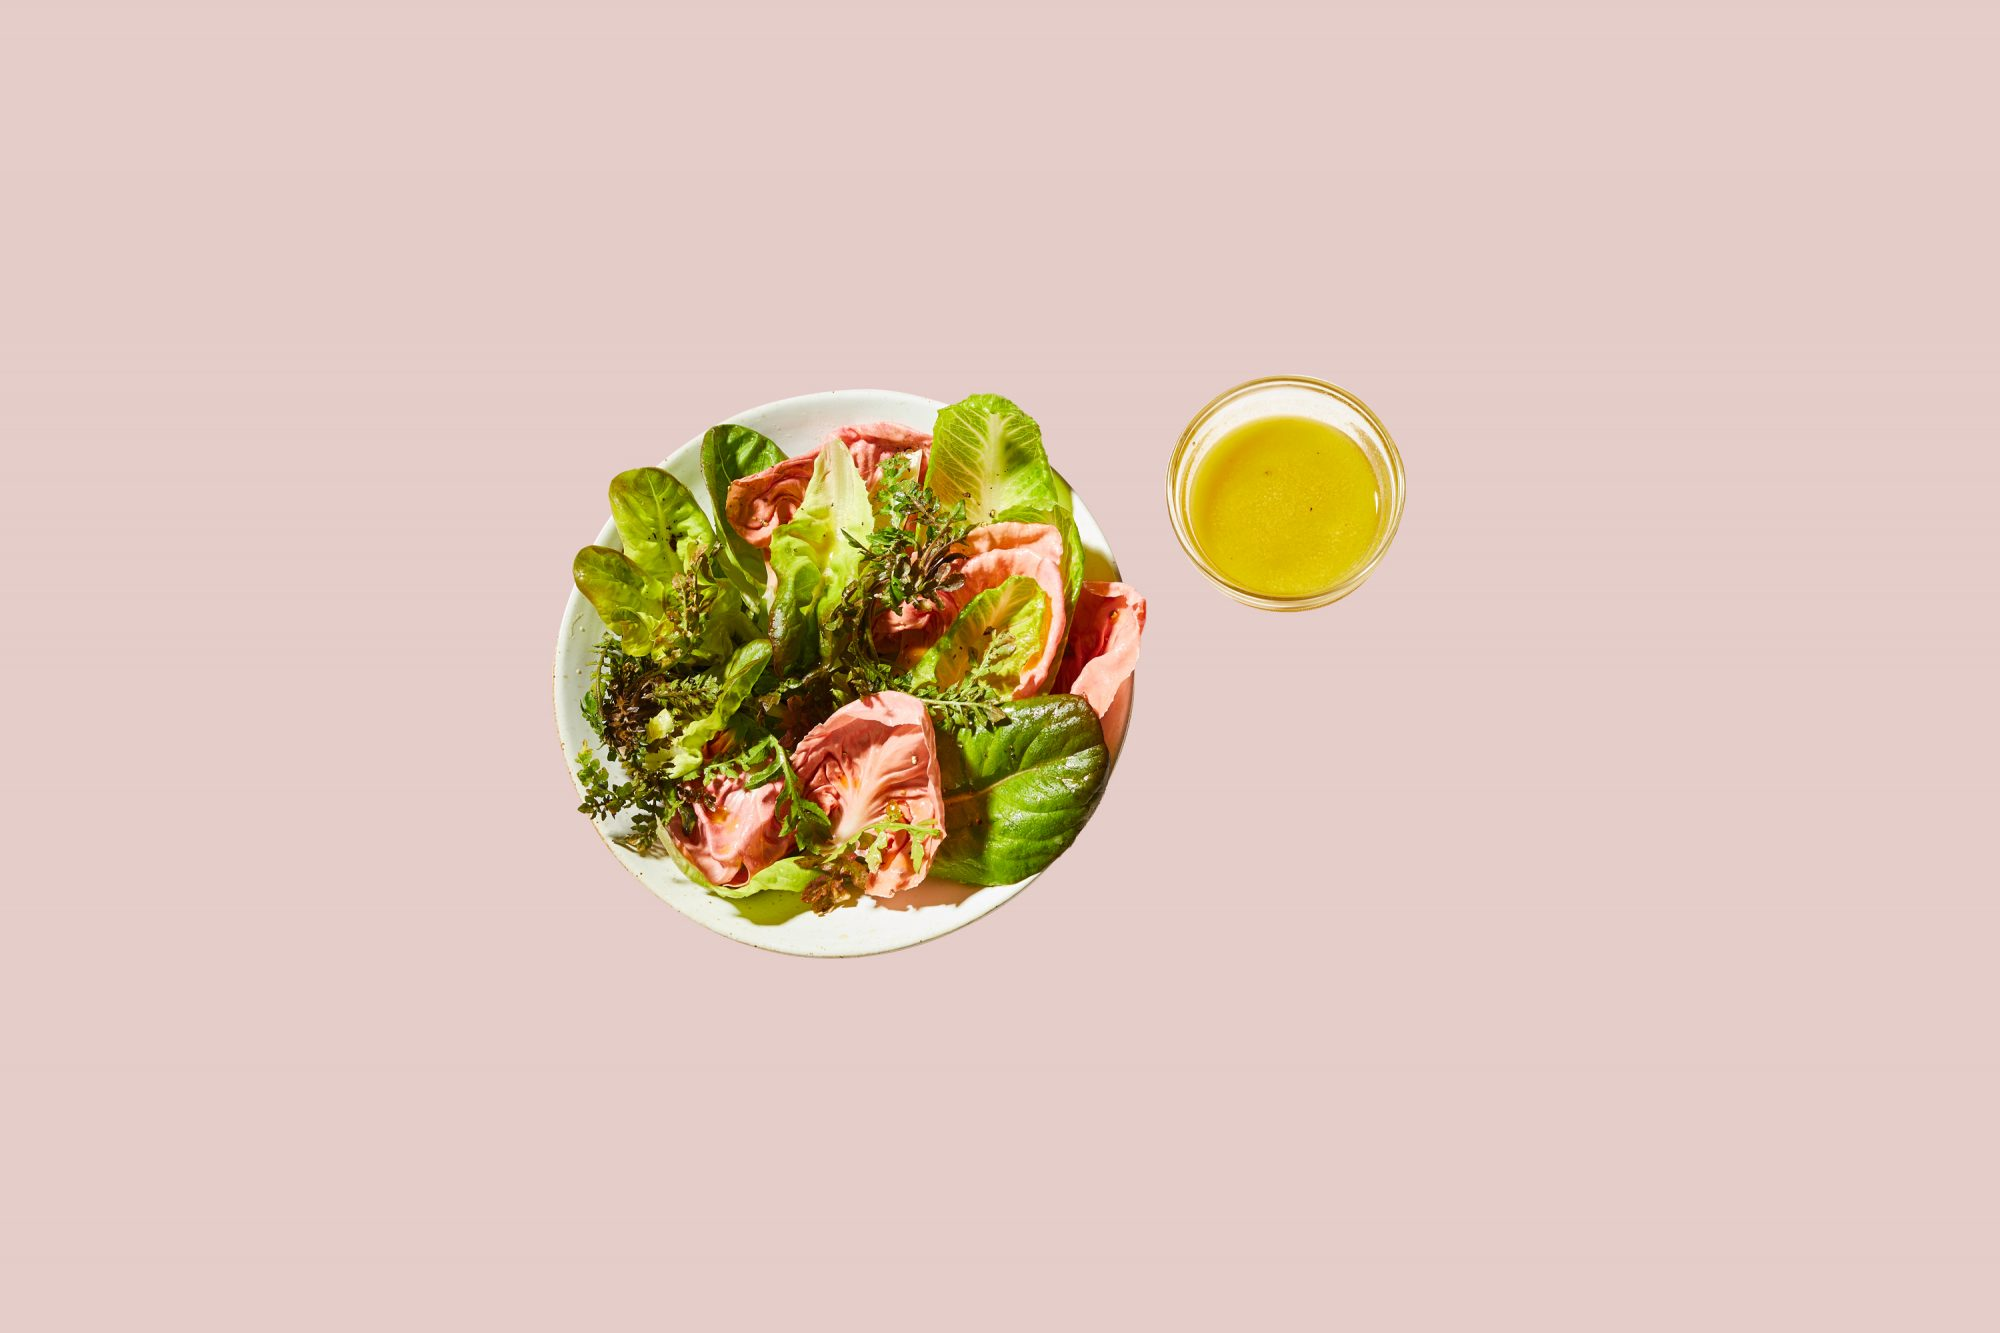 marthas favorite vinaigrette served with mixed greens